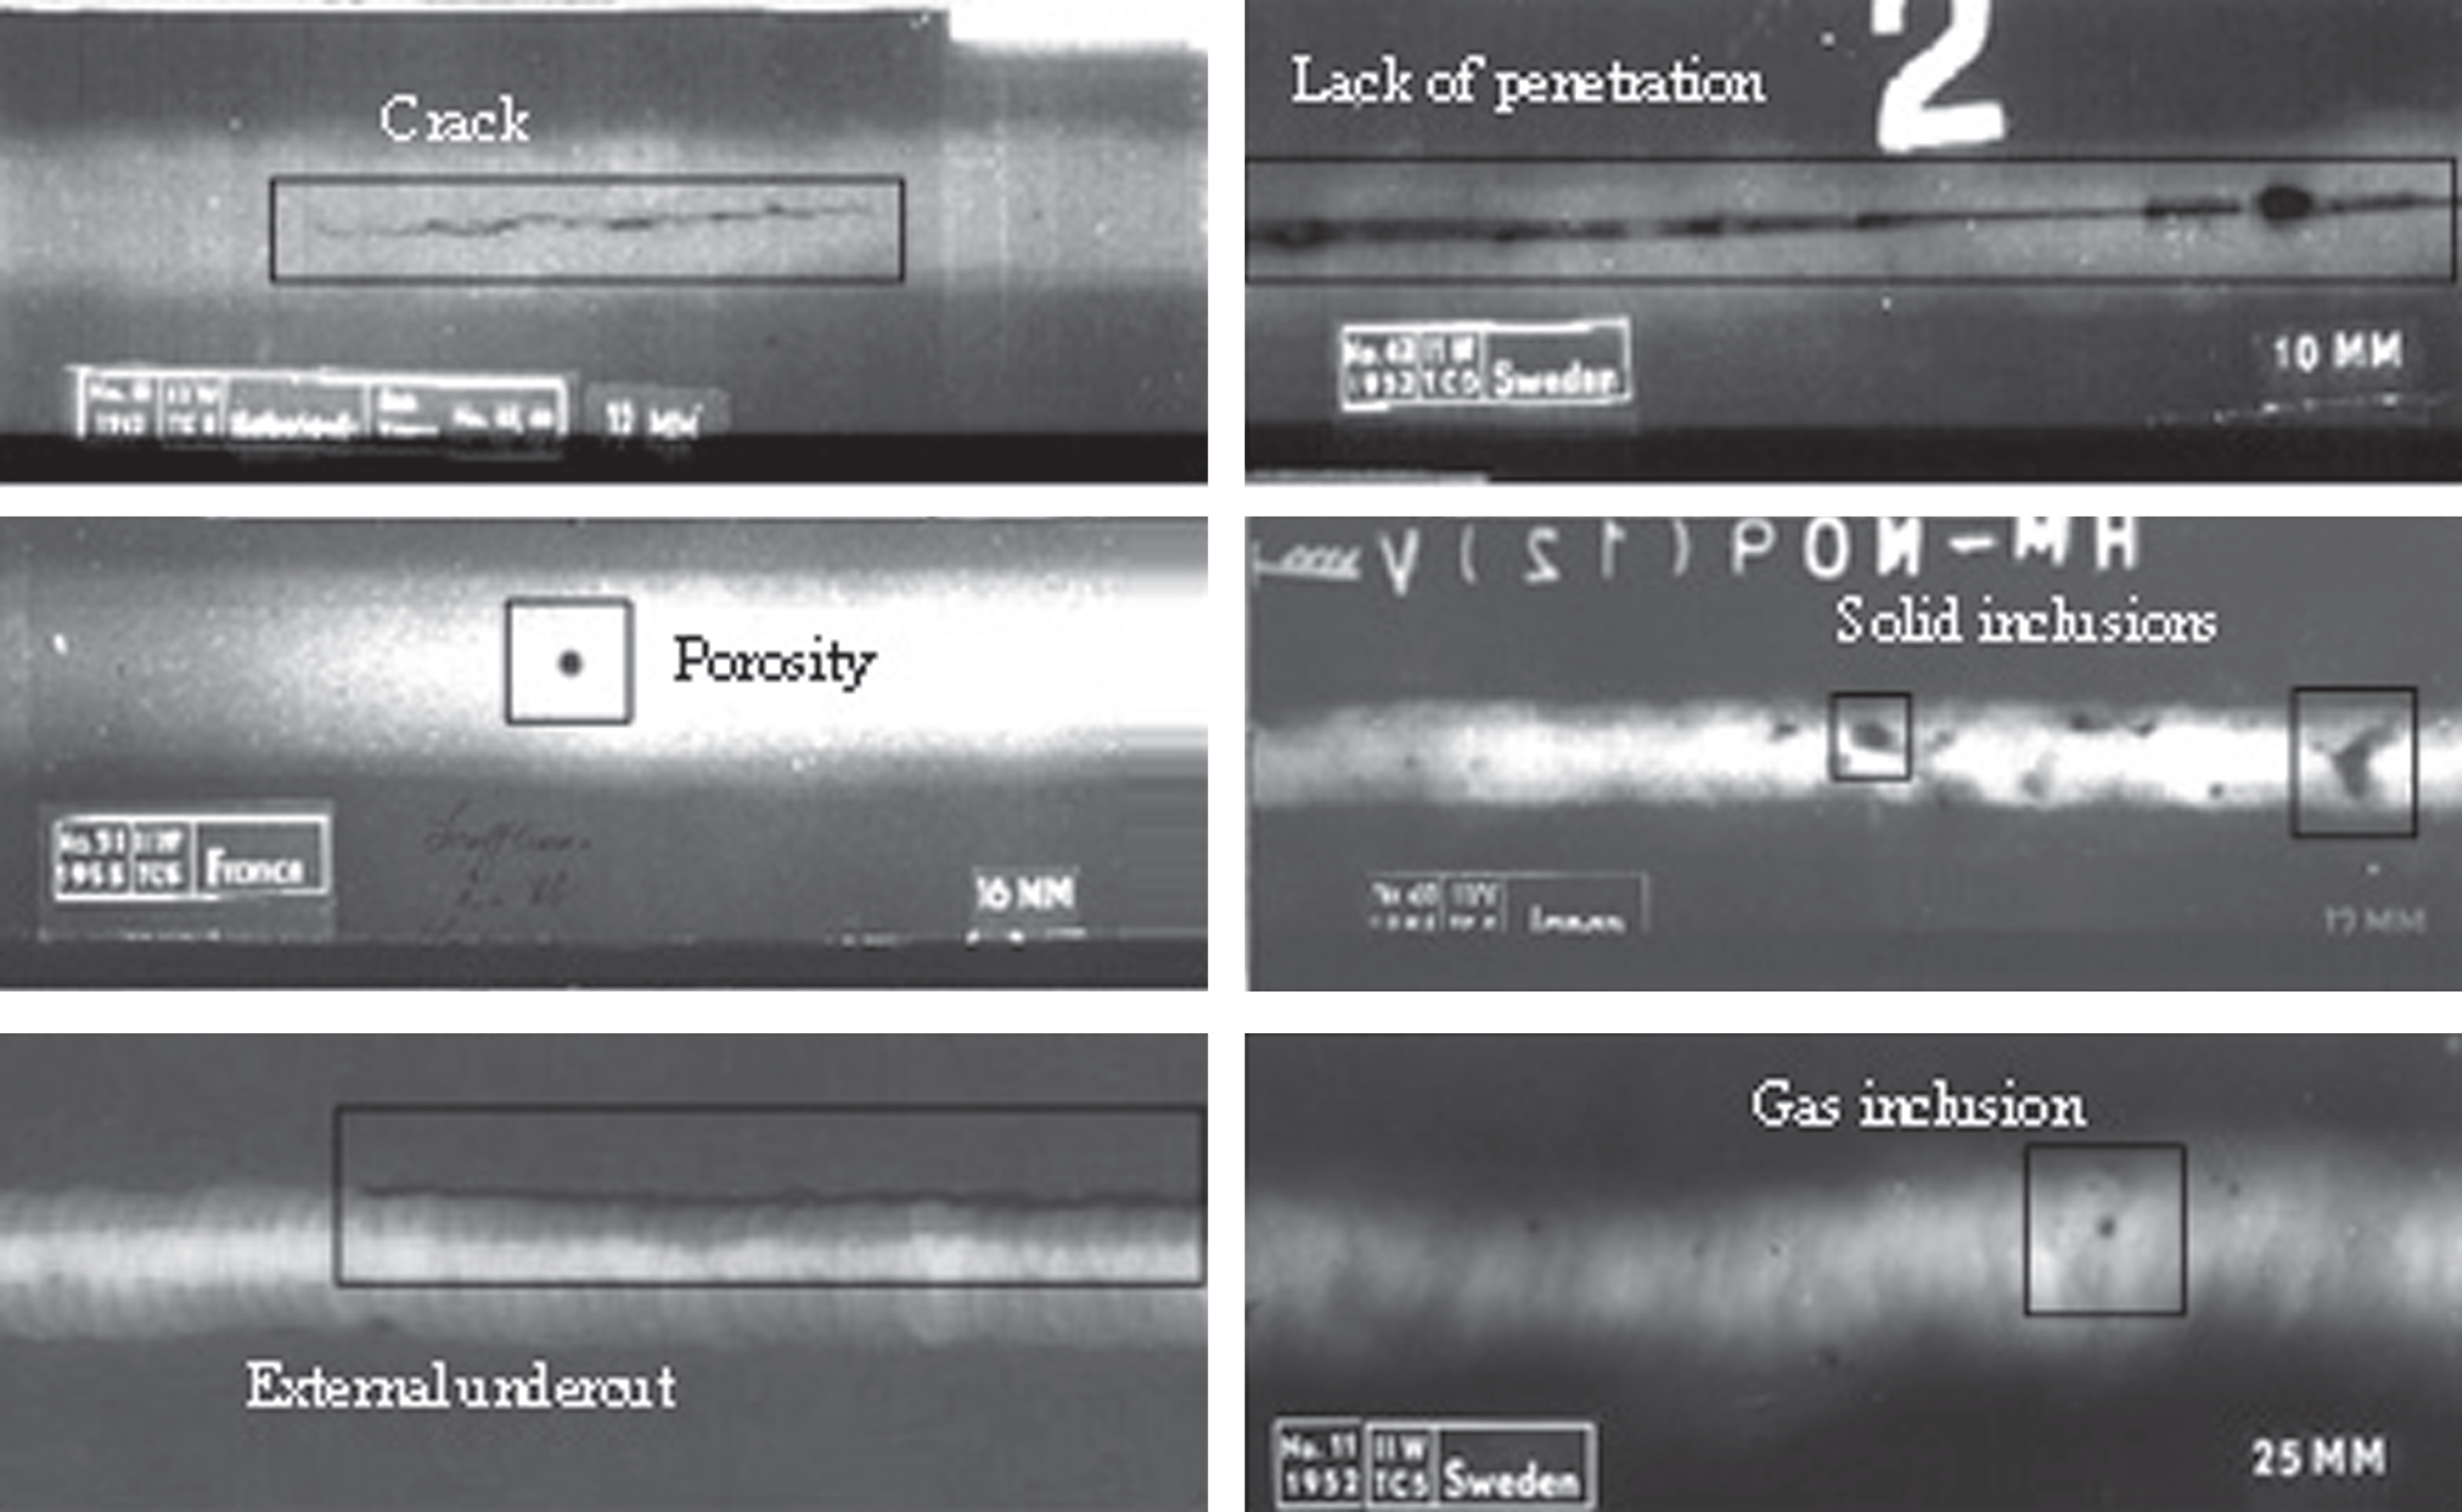 A Lossless hybrid waveletfractal pression for welding radiographic images  IOS Press